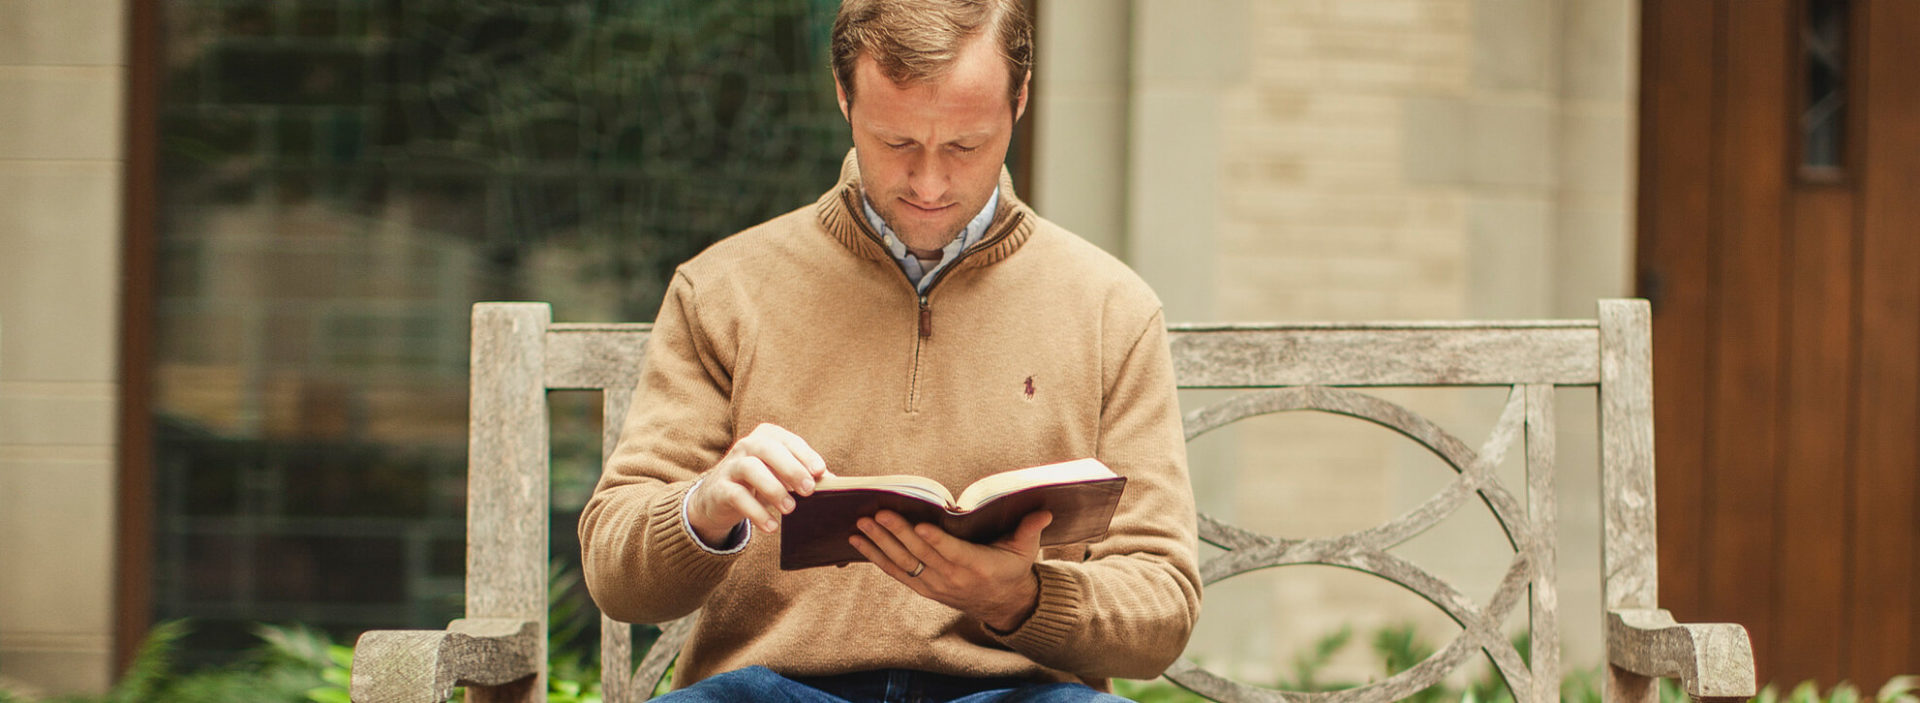 Adult man sits alone studying the bible on a bench in front of a church.